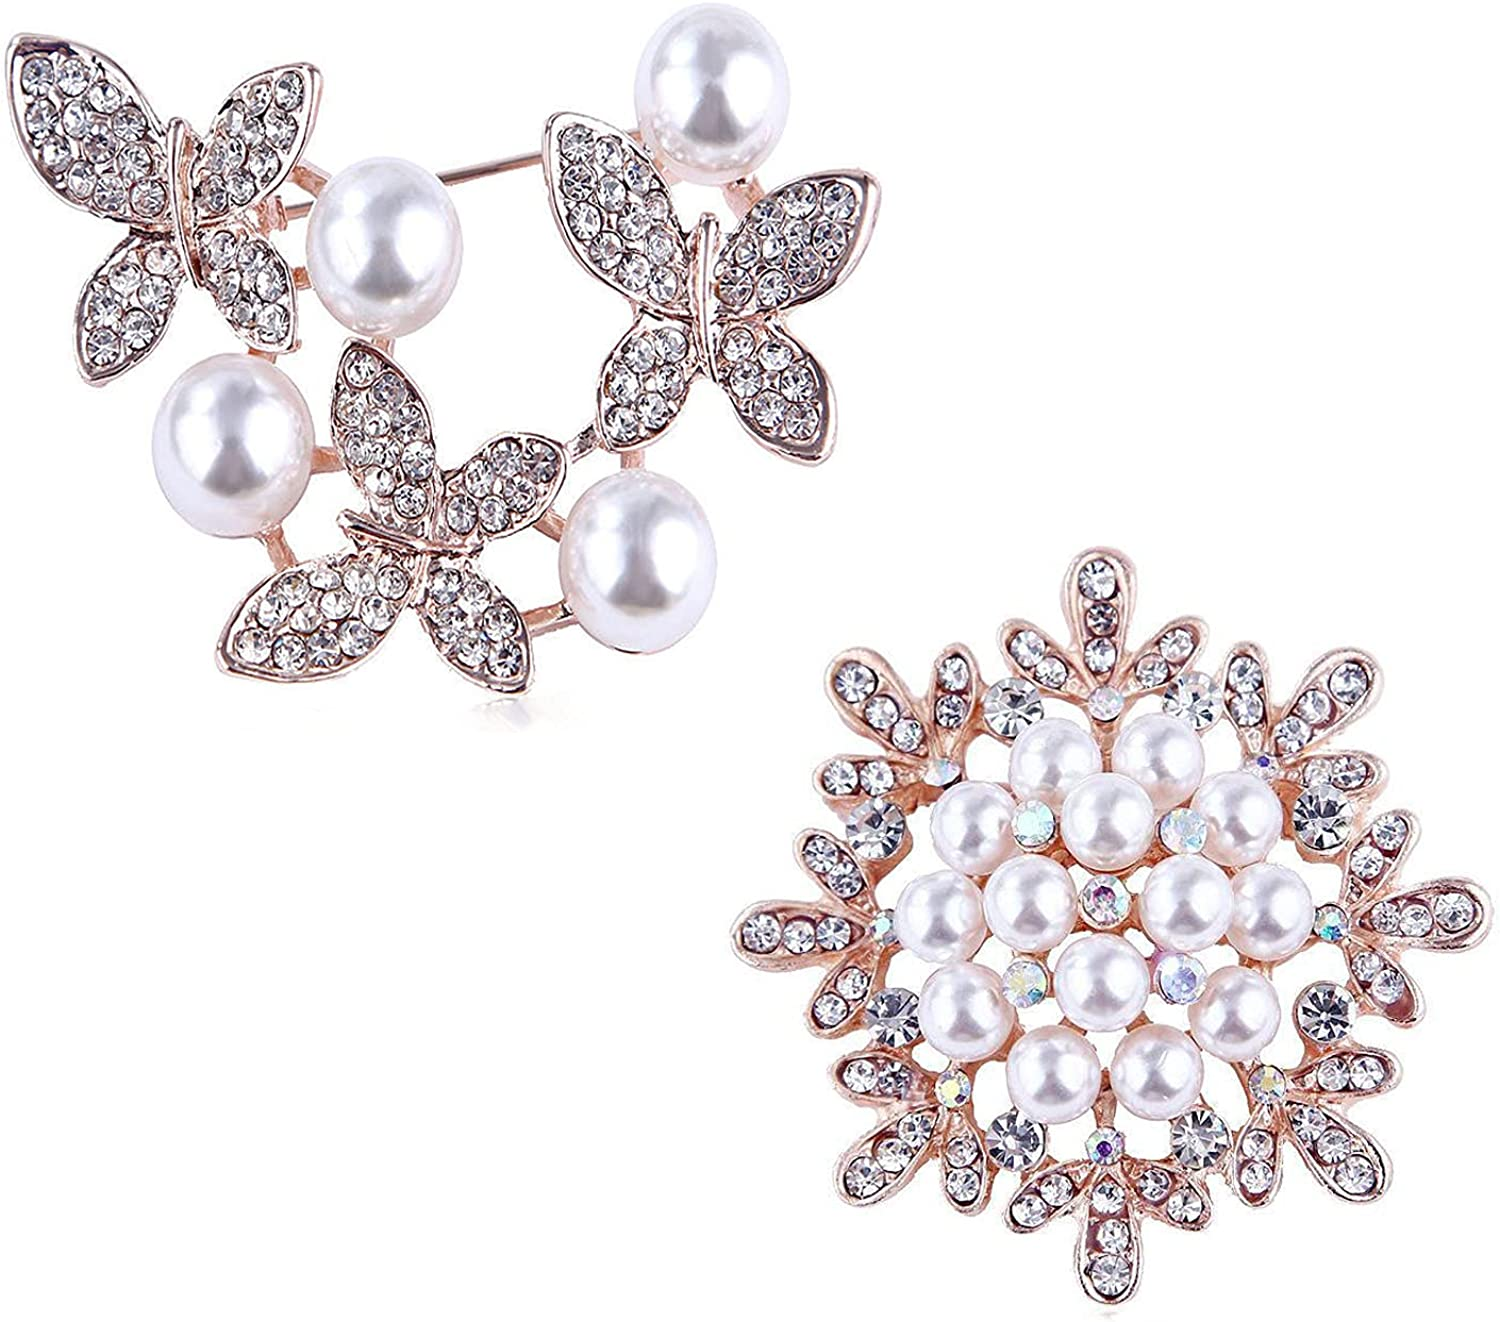 Rhinestone Brooches Pins for Women OHOME Ranking Credence TOP1 Crystal 2pcs Pearl Girl